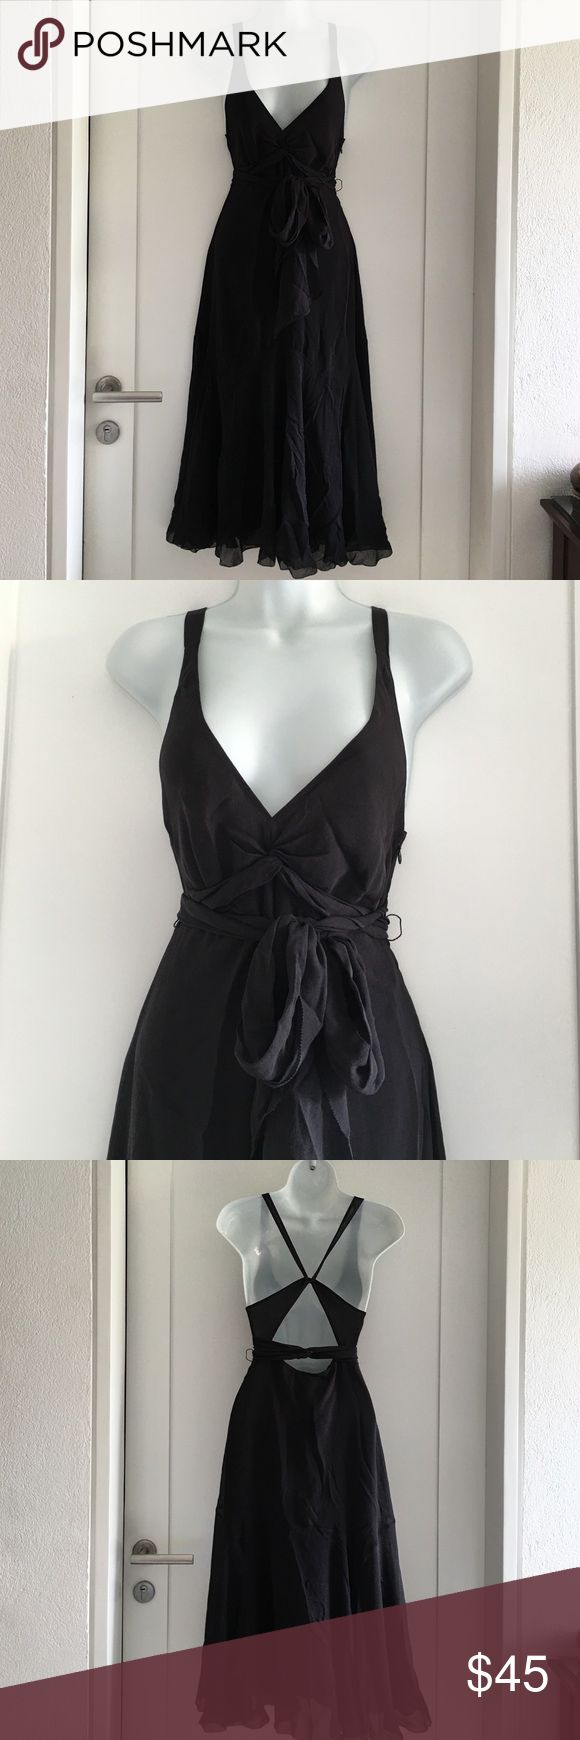 Ted Baker Little Black Dress size 1 / 2 US Preowned Ted Baker Little Black Dress size 1. Amazing back. 100% silk. Missing slip. Please look at pictures for better reference. Happy shopping!! Ted Baker Dresses Midi